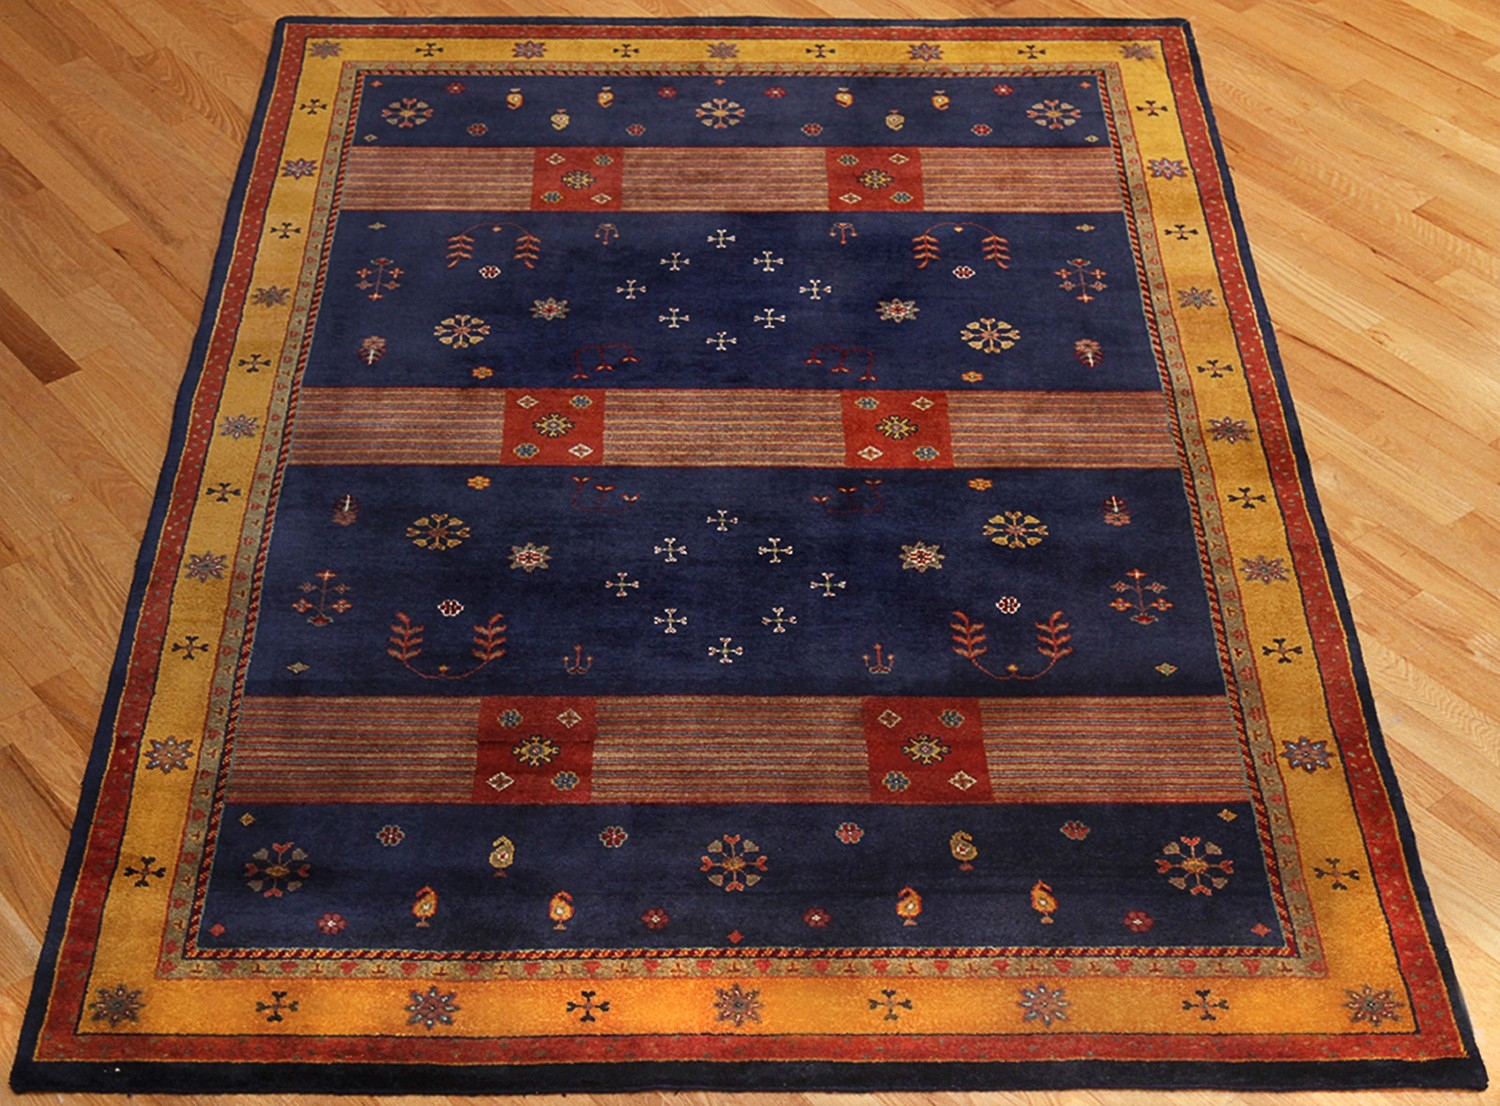 Rugsville Gabbeh Tribal Navy Blue Gold Wool Rug 13230 Rugsville With Gabbeh Rugs (Image 9 of 15)